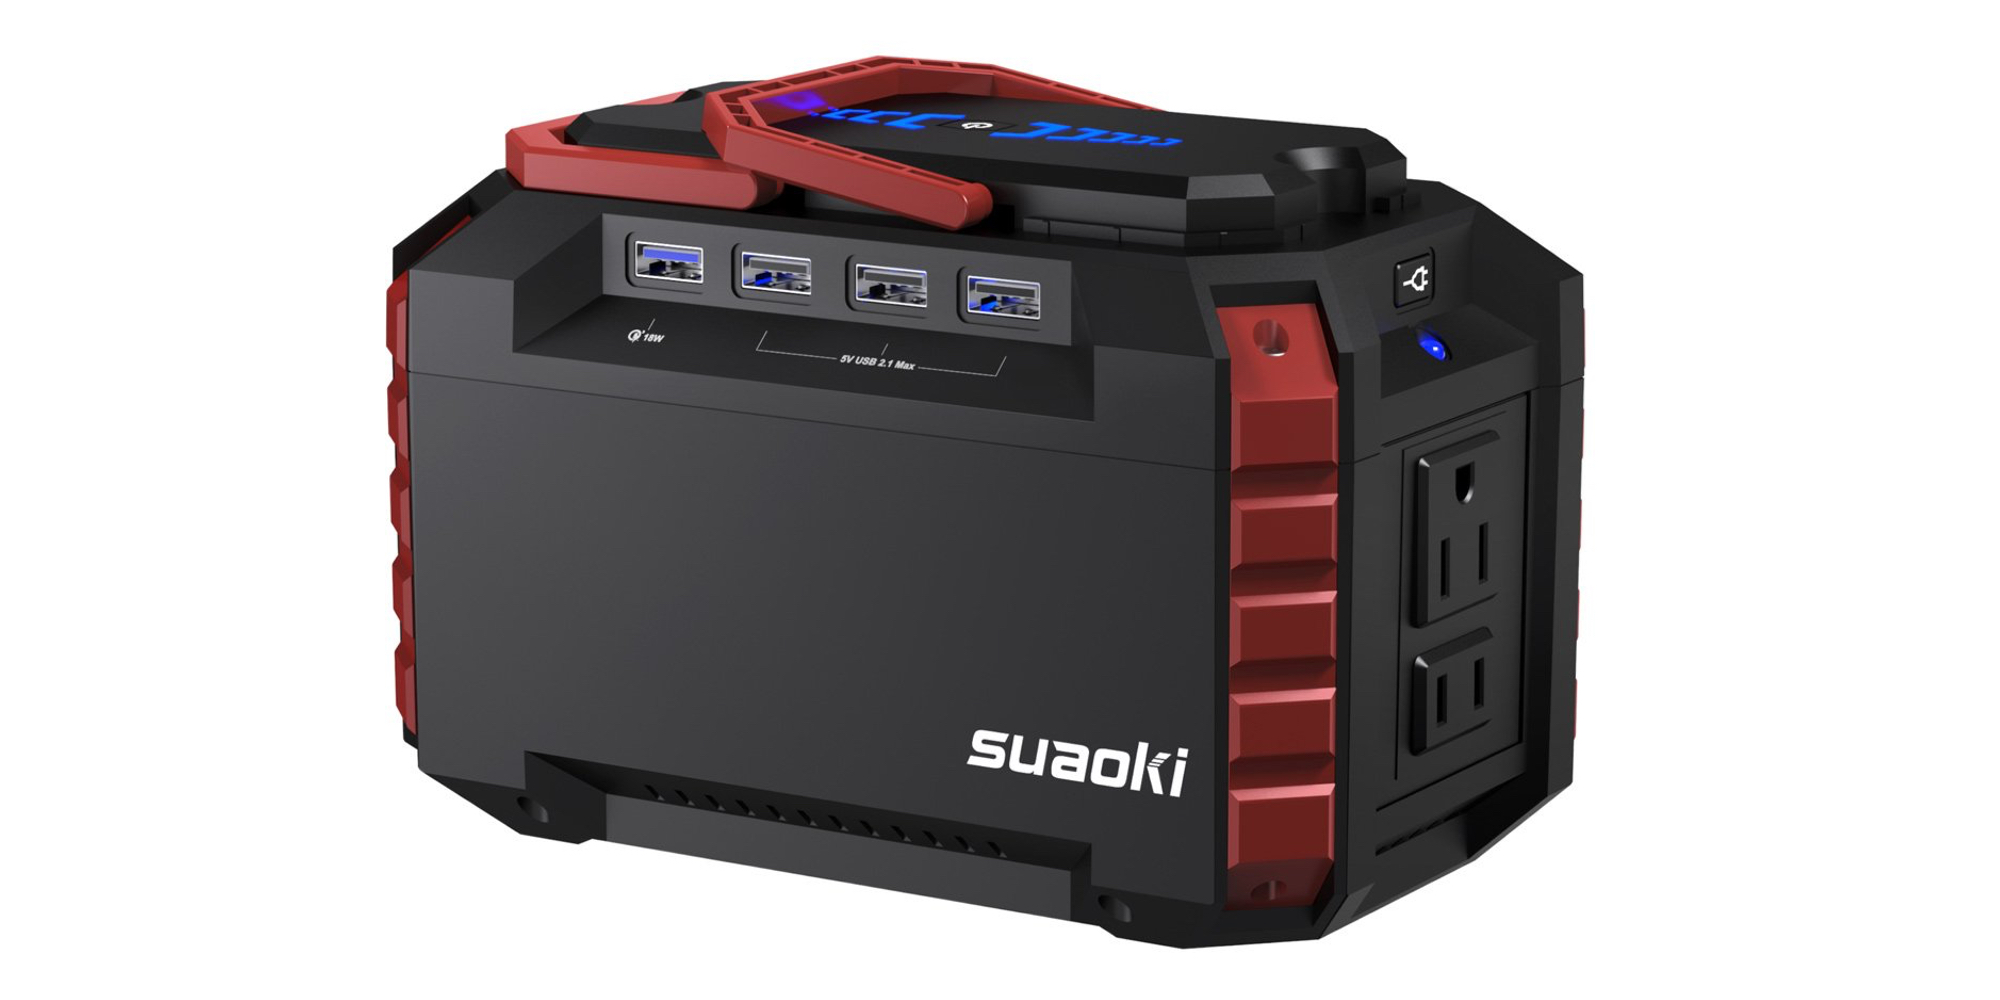 Suaoki's 150Wh Power Station covers all of your portable energy needs at $94.50 shipped (25% off)